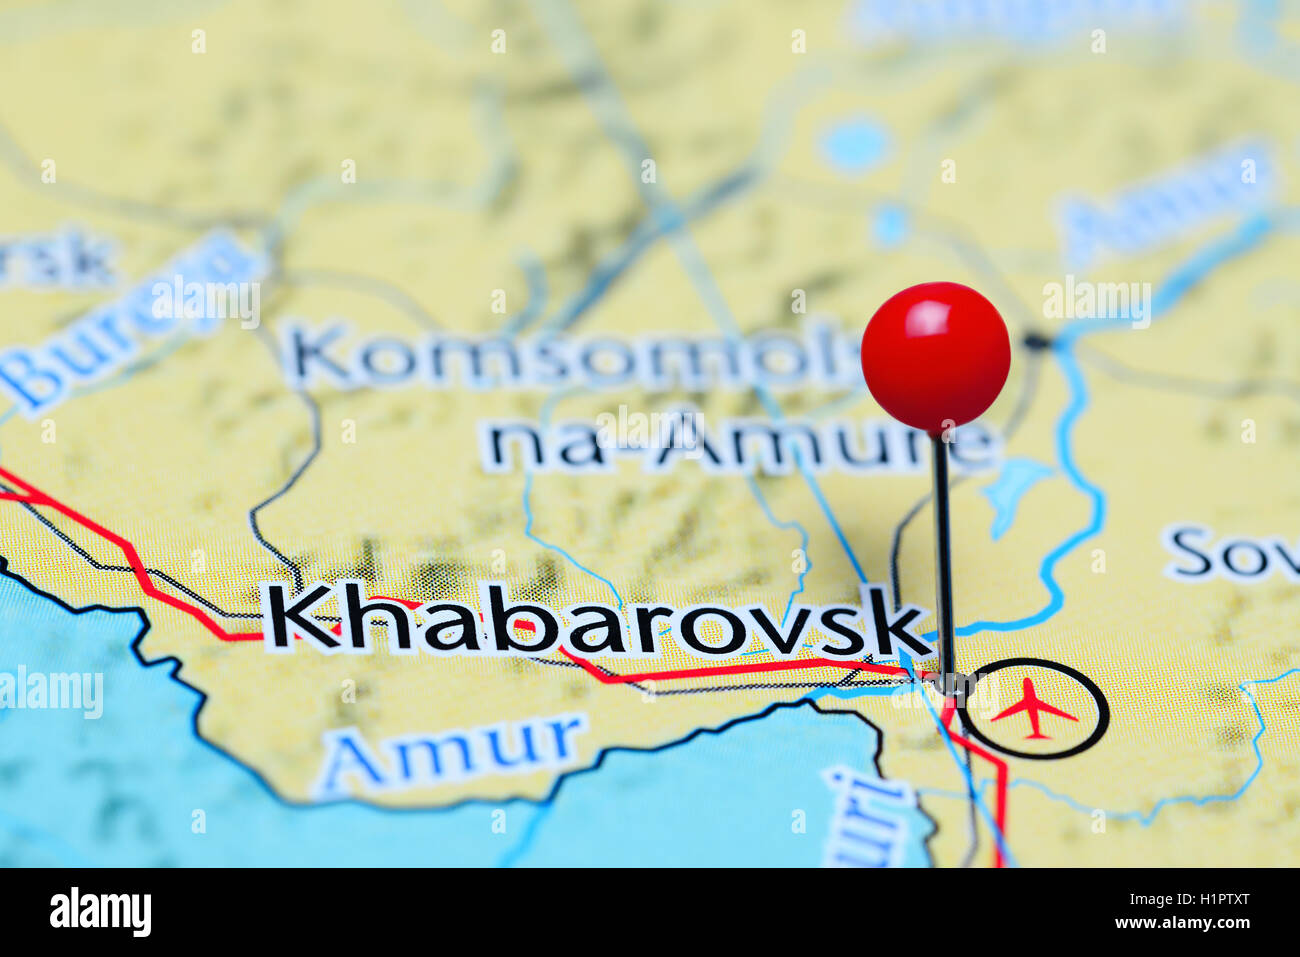 Khabarovsk pinned on a map of Russia - Stock Image